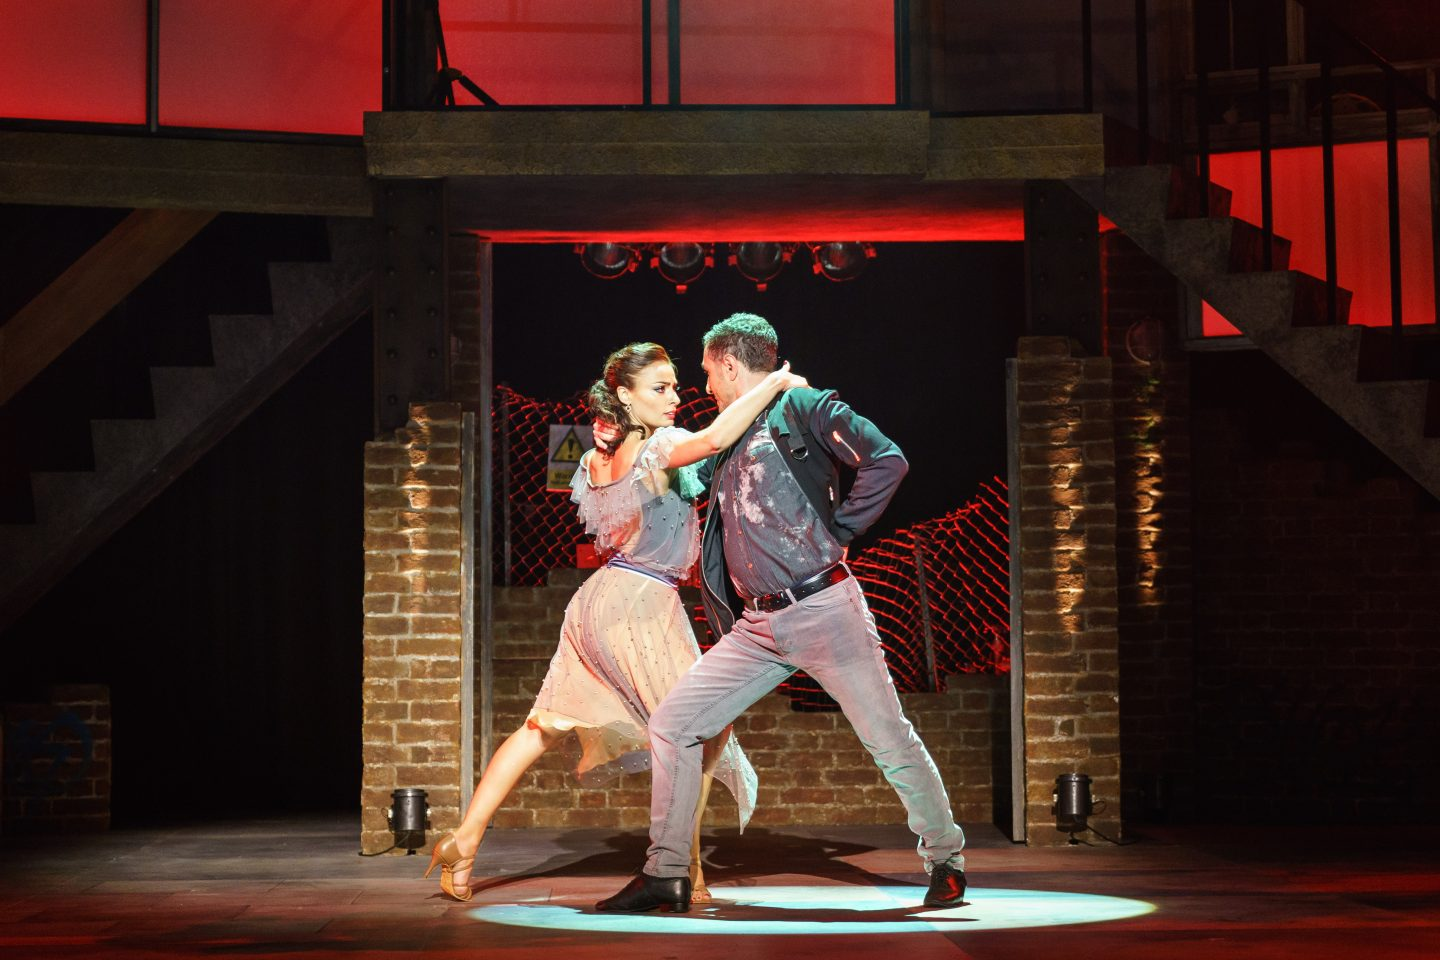 Vincent Simone and Flavia Cacace in Tango Moderno.